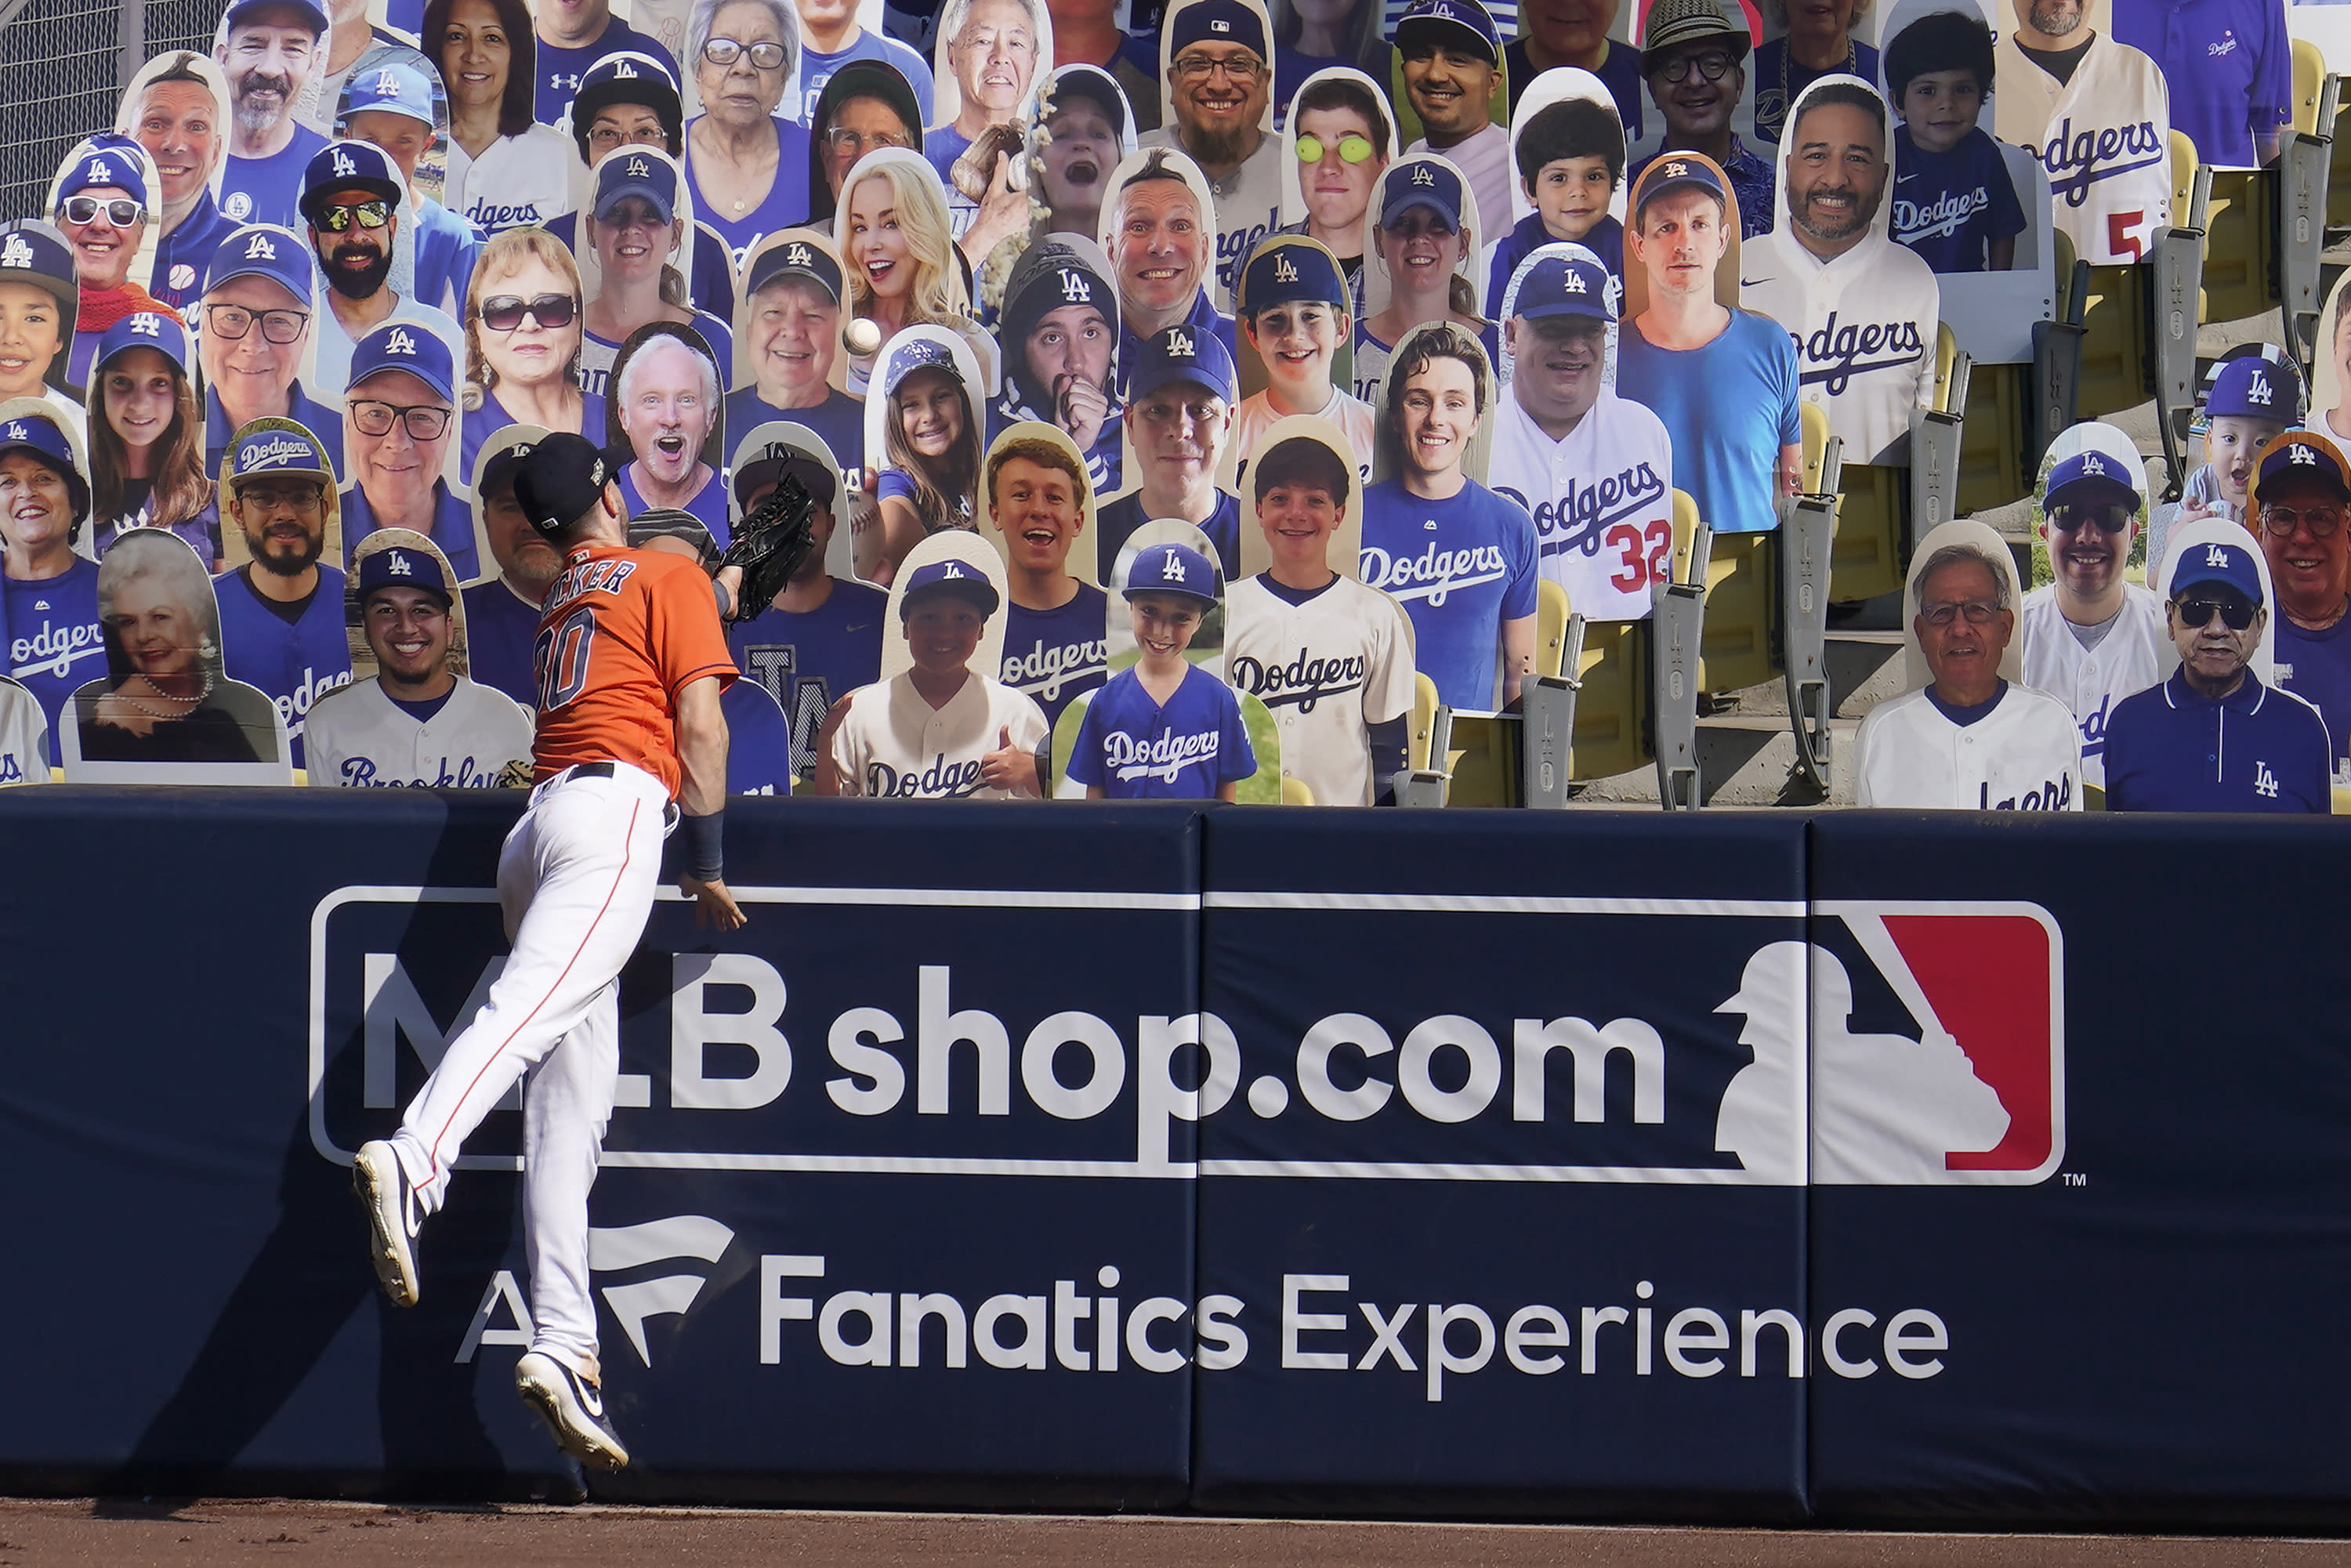 Houston Astros right fielder Kyle Tucker cannot catch a three-run home run hit by Oakland Athletics' Chad Pinder that lands in front of cutouts seated at Dodger Stadium during the seventh inning of Game 3 of a baseball American League Division Series in Los Angeles, Wednesday, Oct. 7, 2020. (AP Photo/Marcio Jose Sanchez)